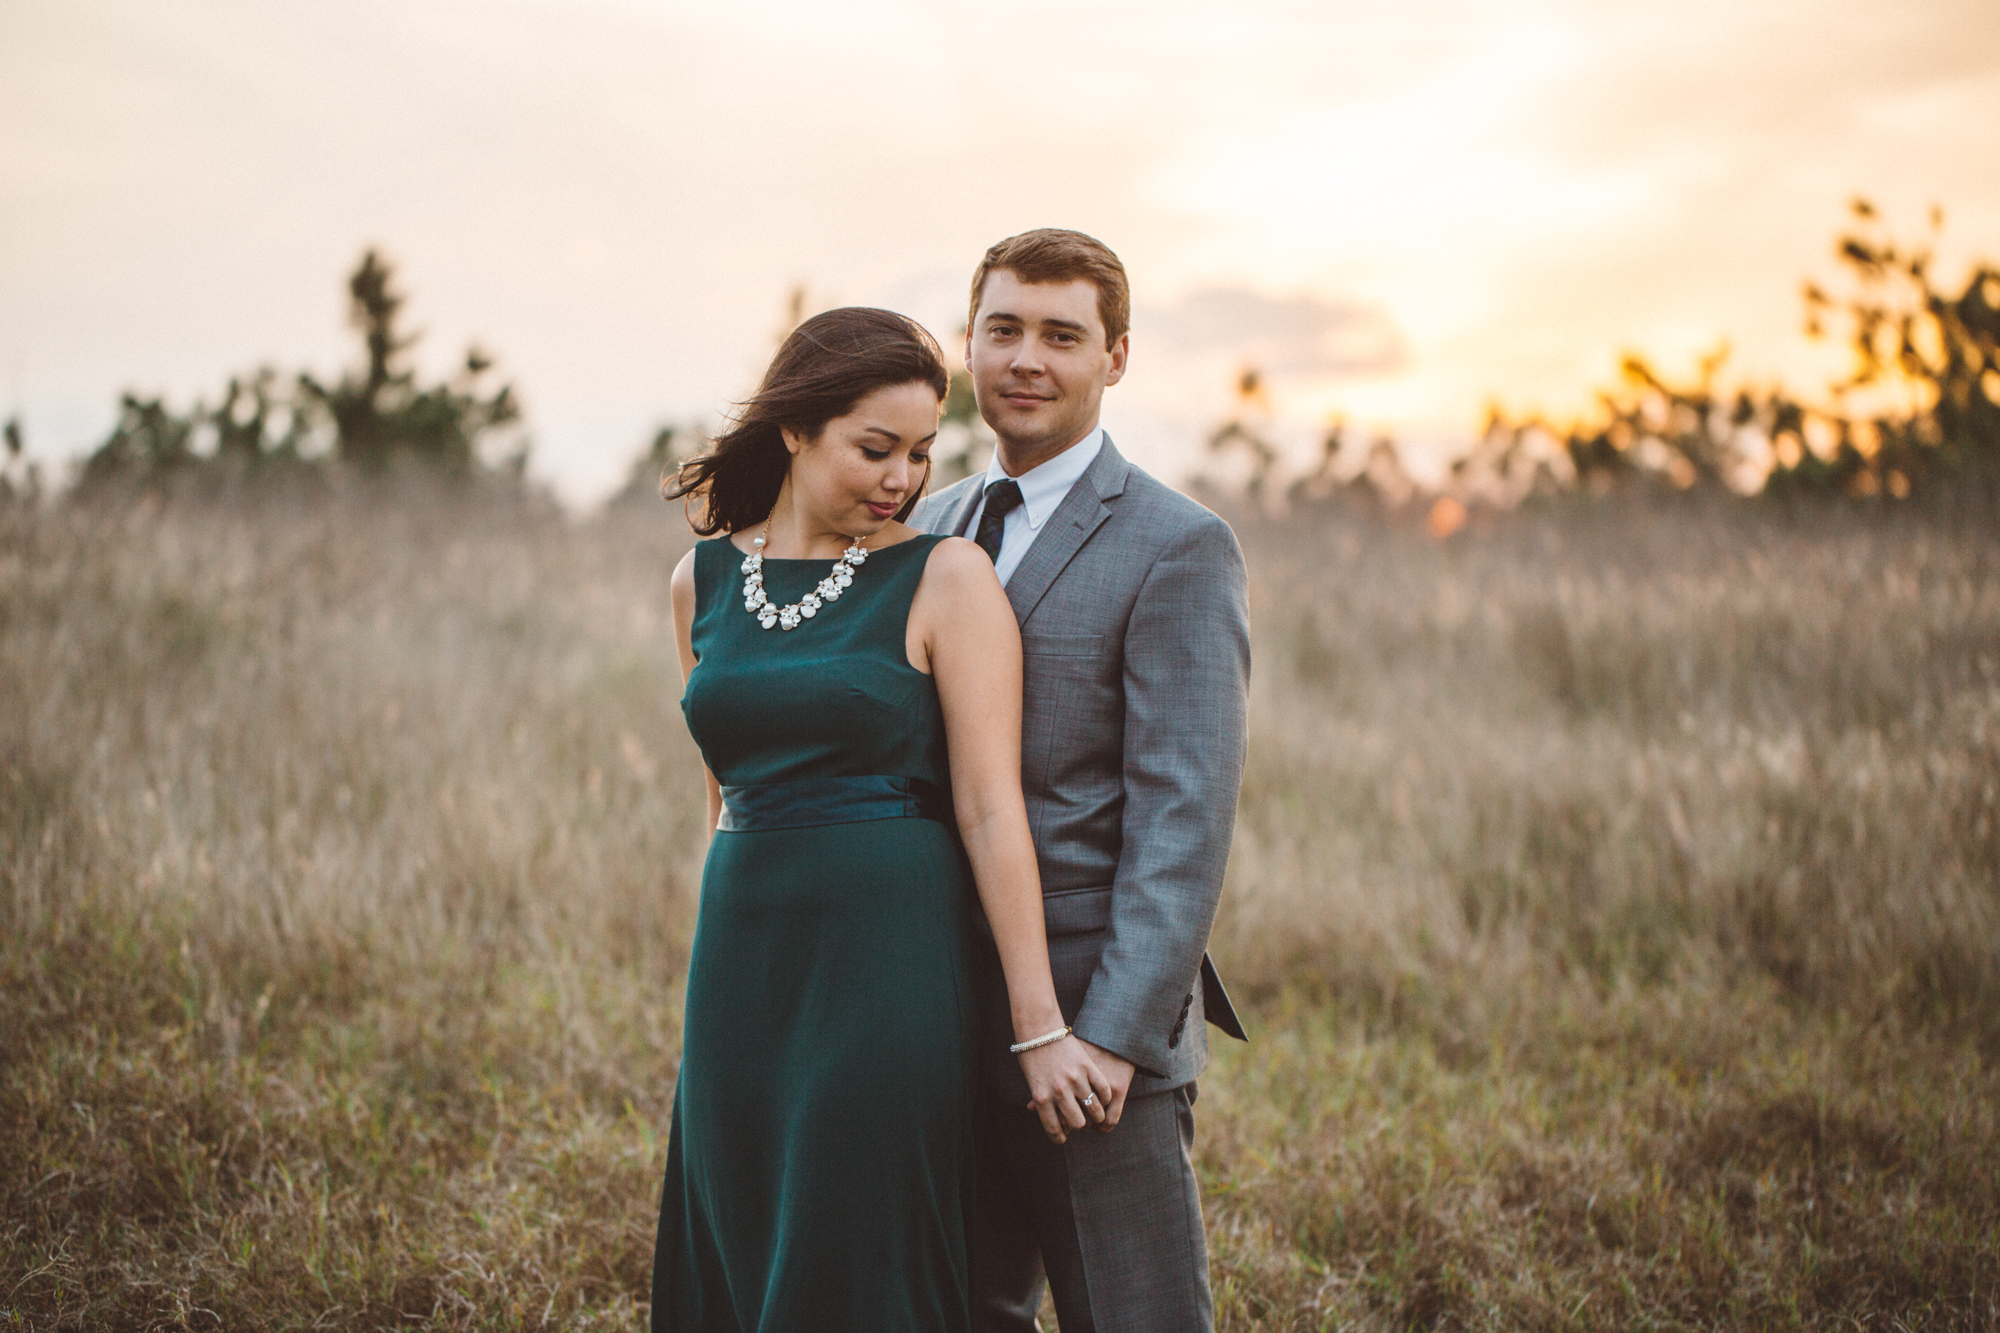 Orlando Engagement Photographer-76.jpg